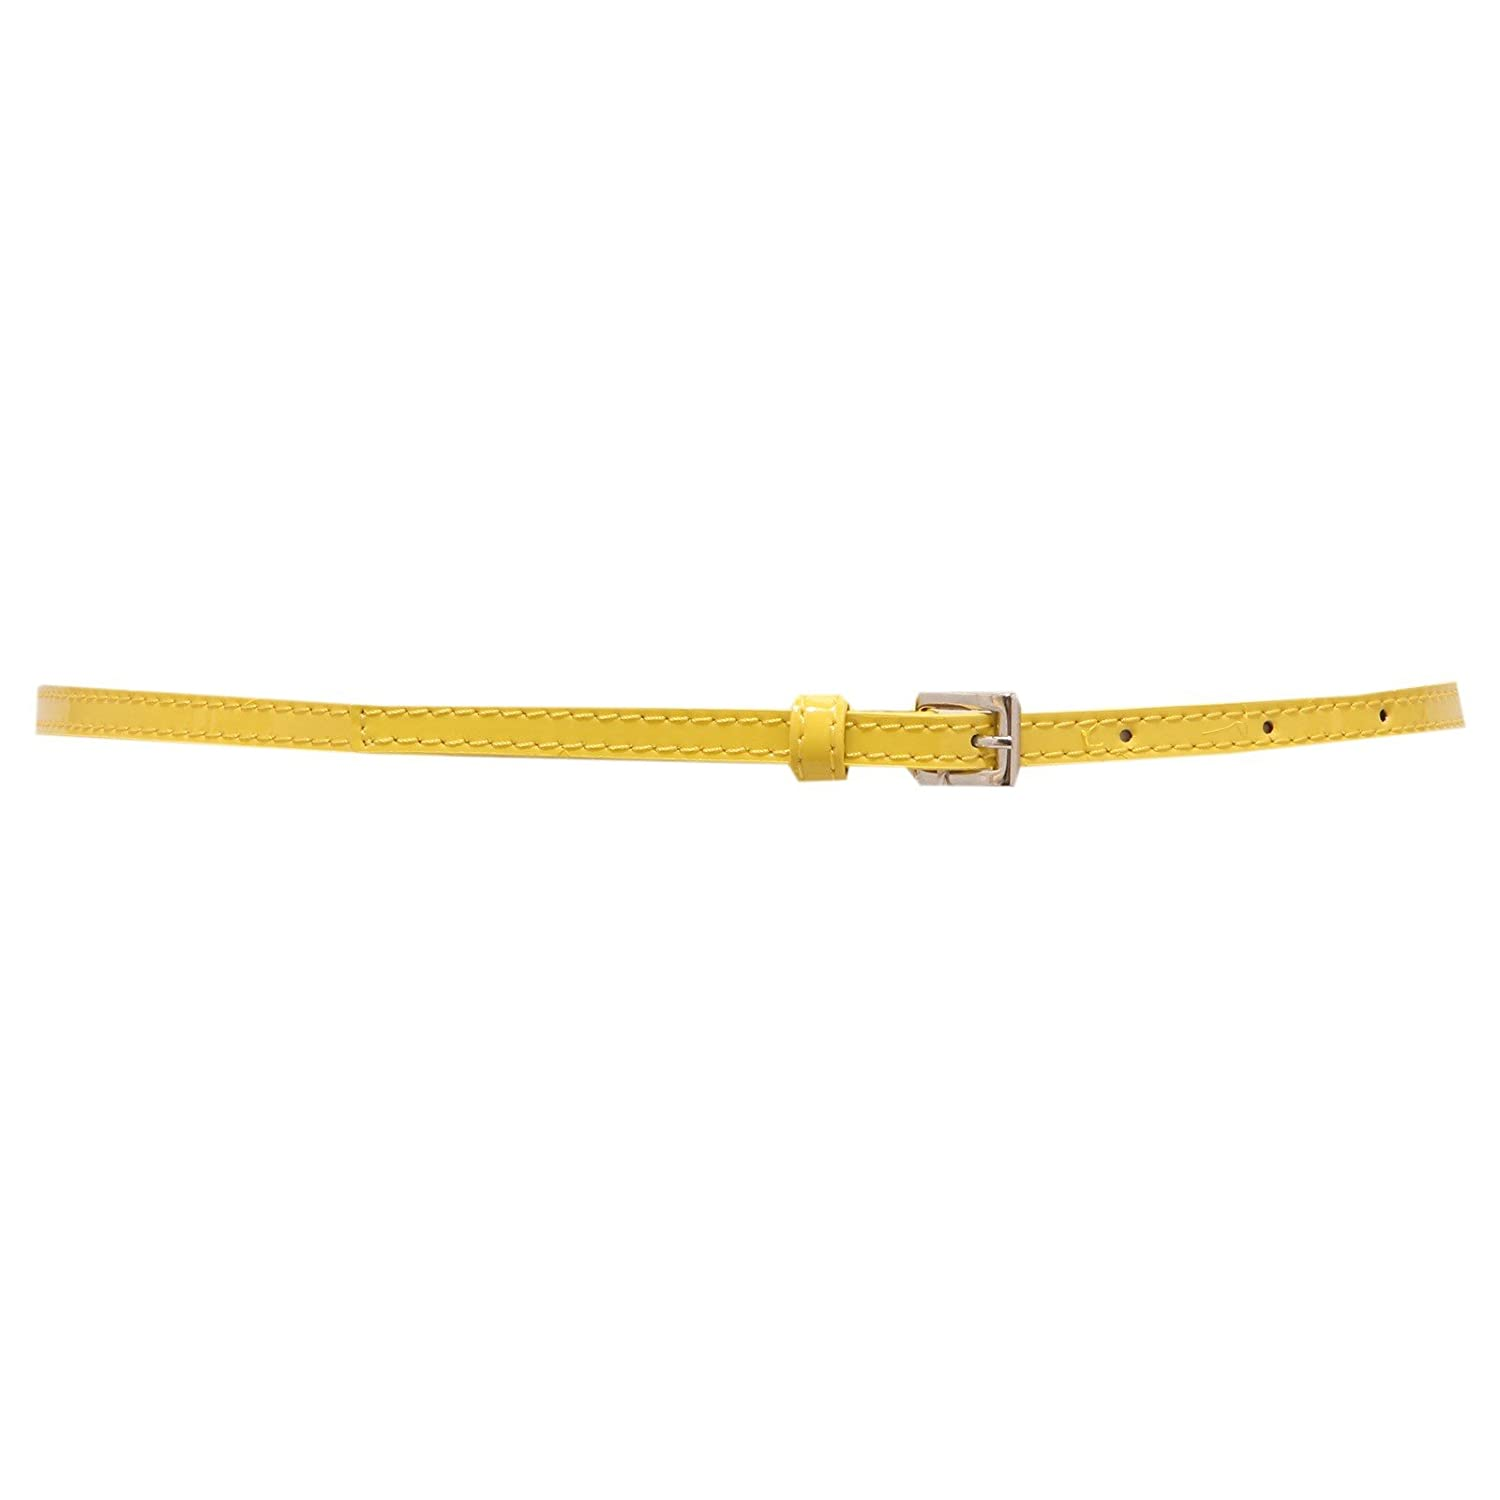 4301U cintura bimba SIMONETTA MINI pelle genuine leather yellow belt girl [6 YEARS]